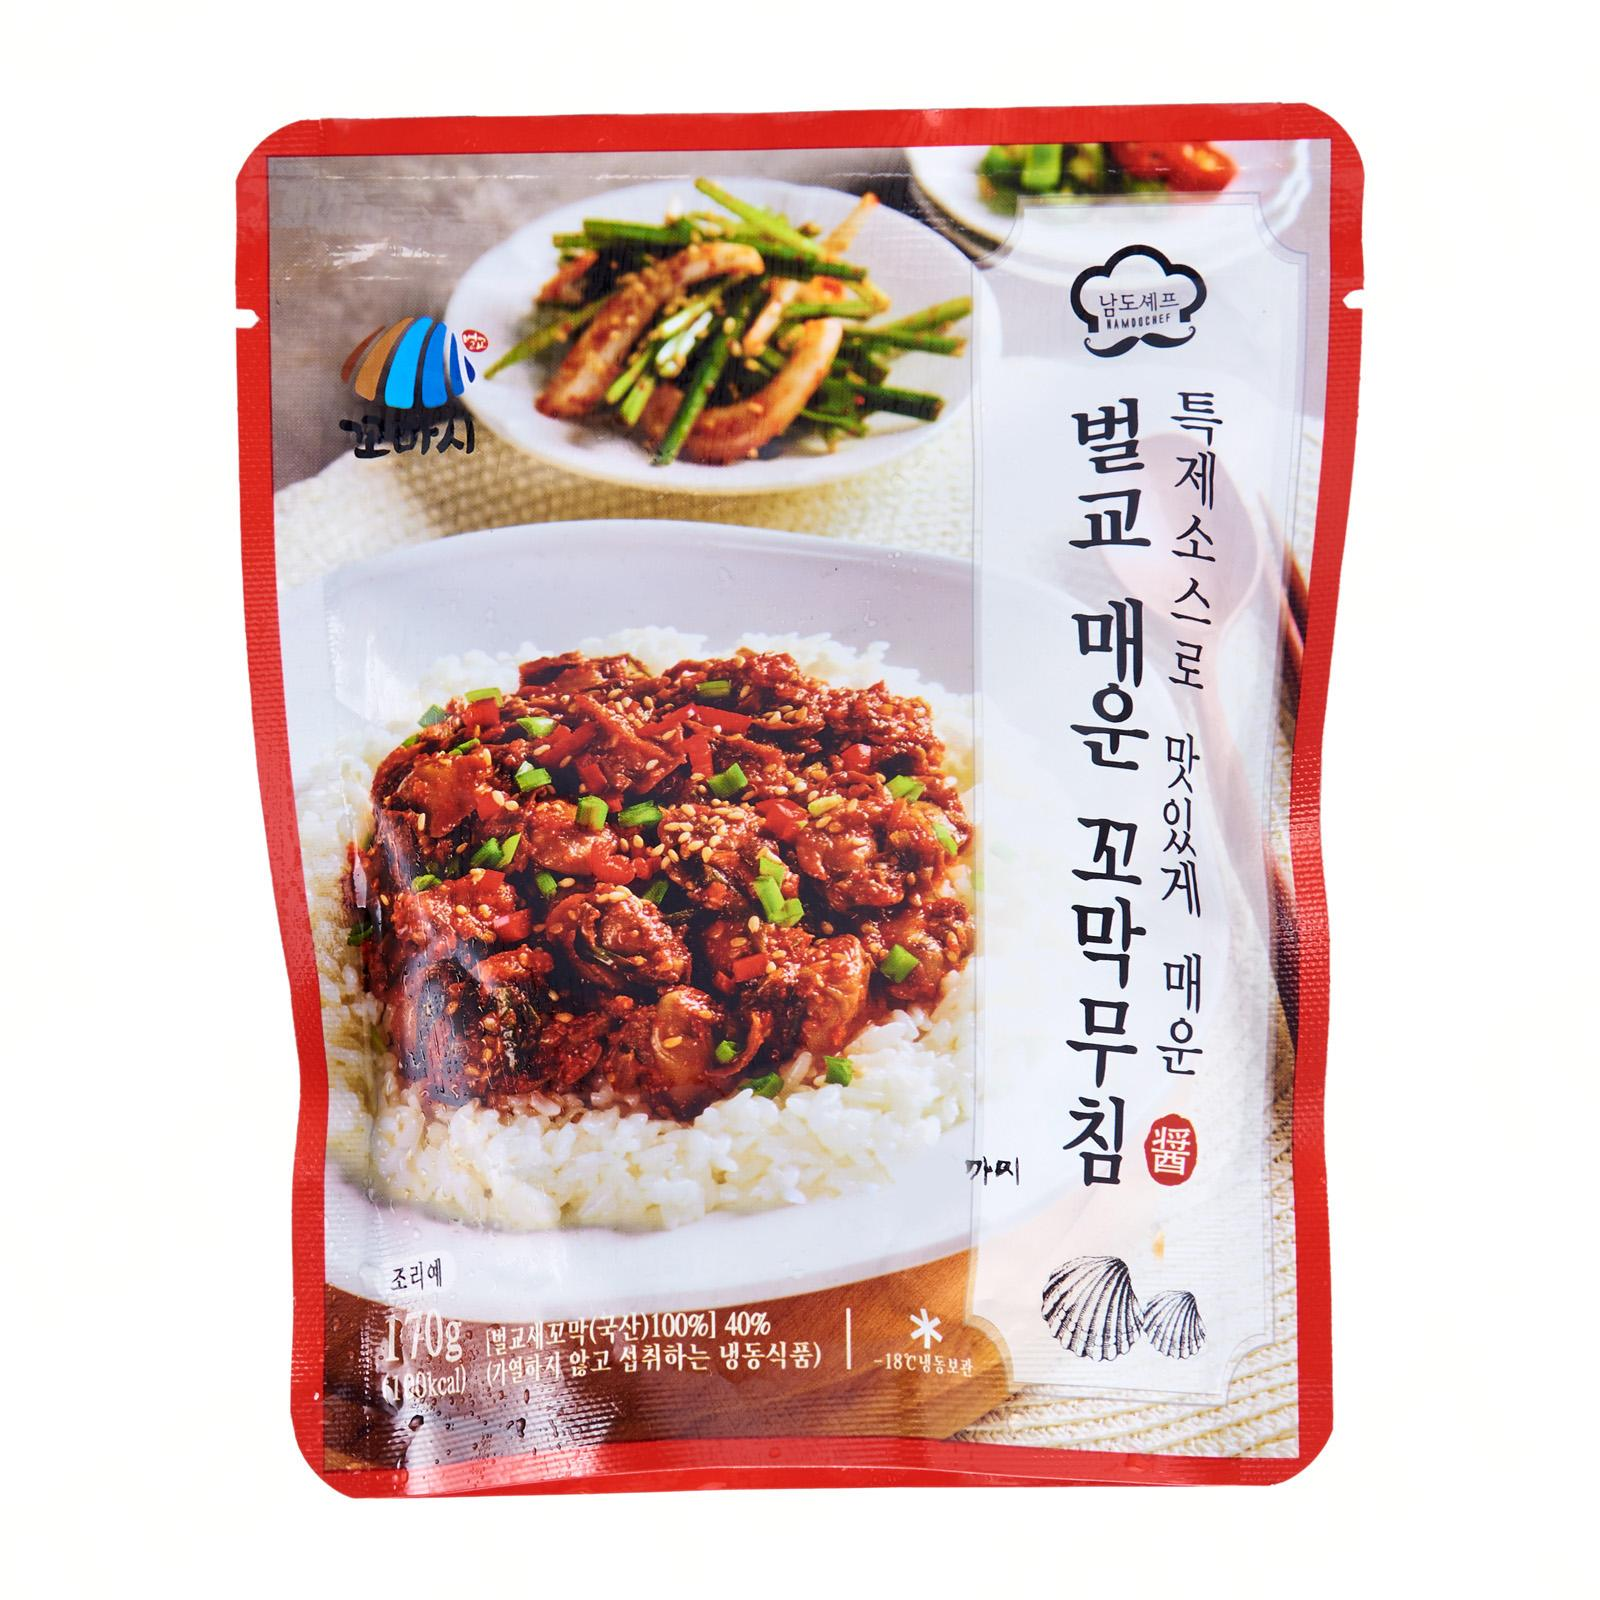 Beolgyo Korean Ark Shell with Spicy Sauce - Frozen